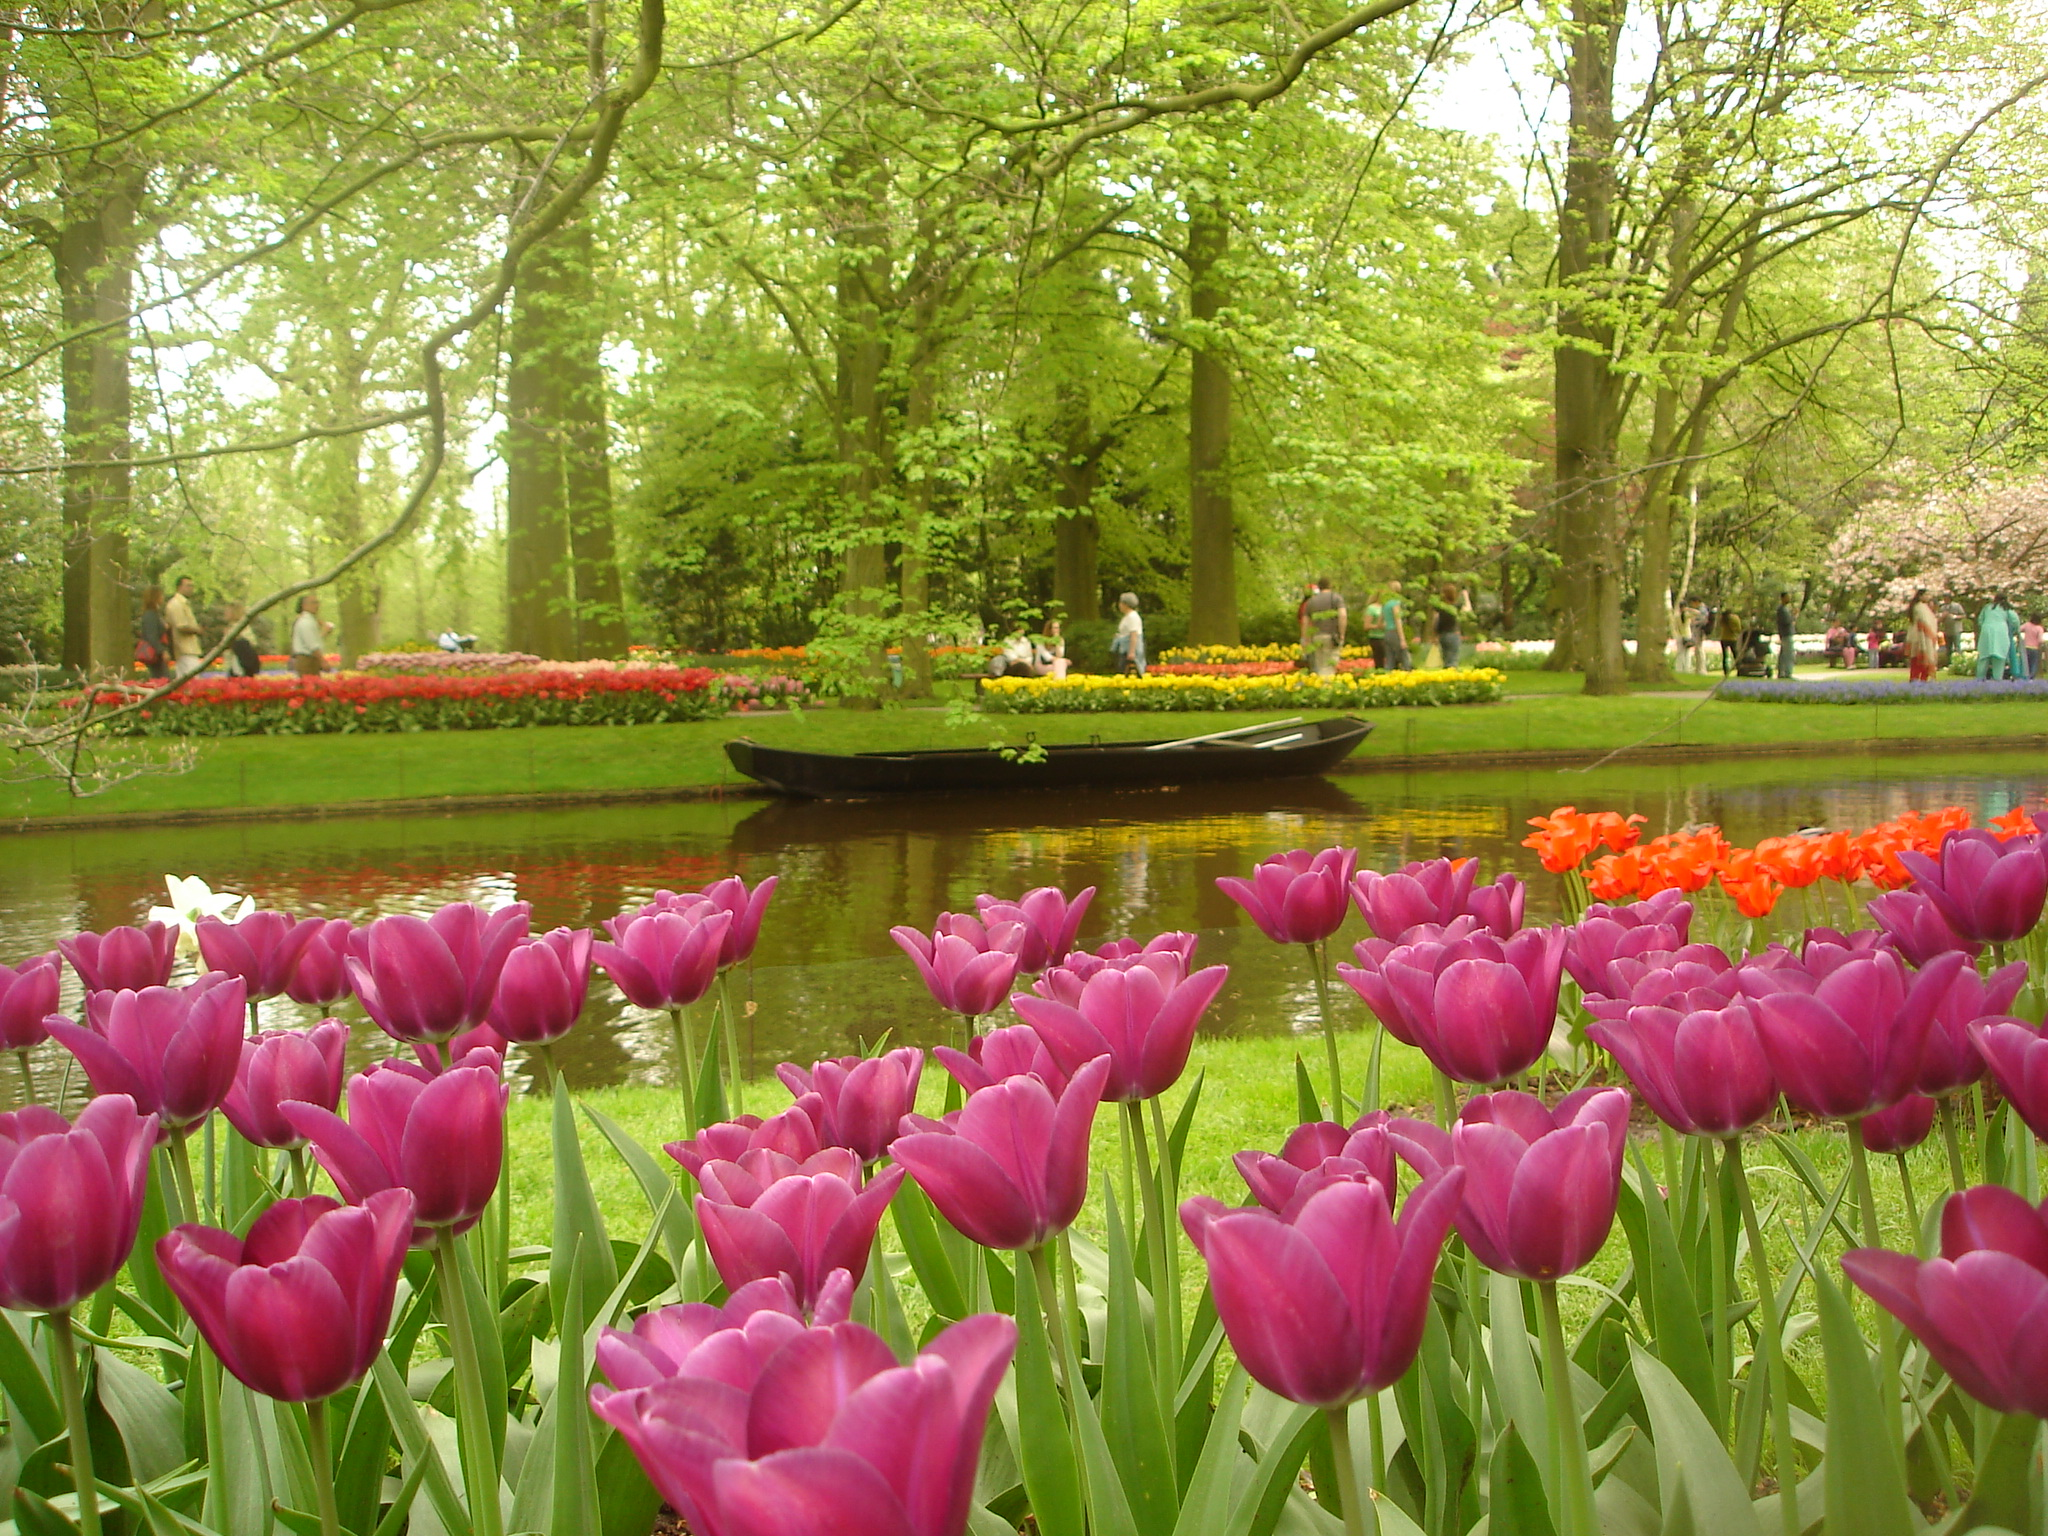 http://upload.wikimedia.org/wikipedia/commons/5/57/Keukenhof_May2006.JPG